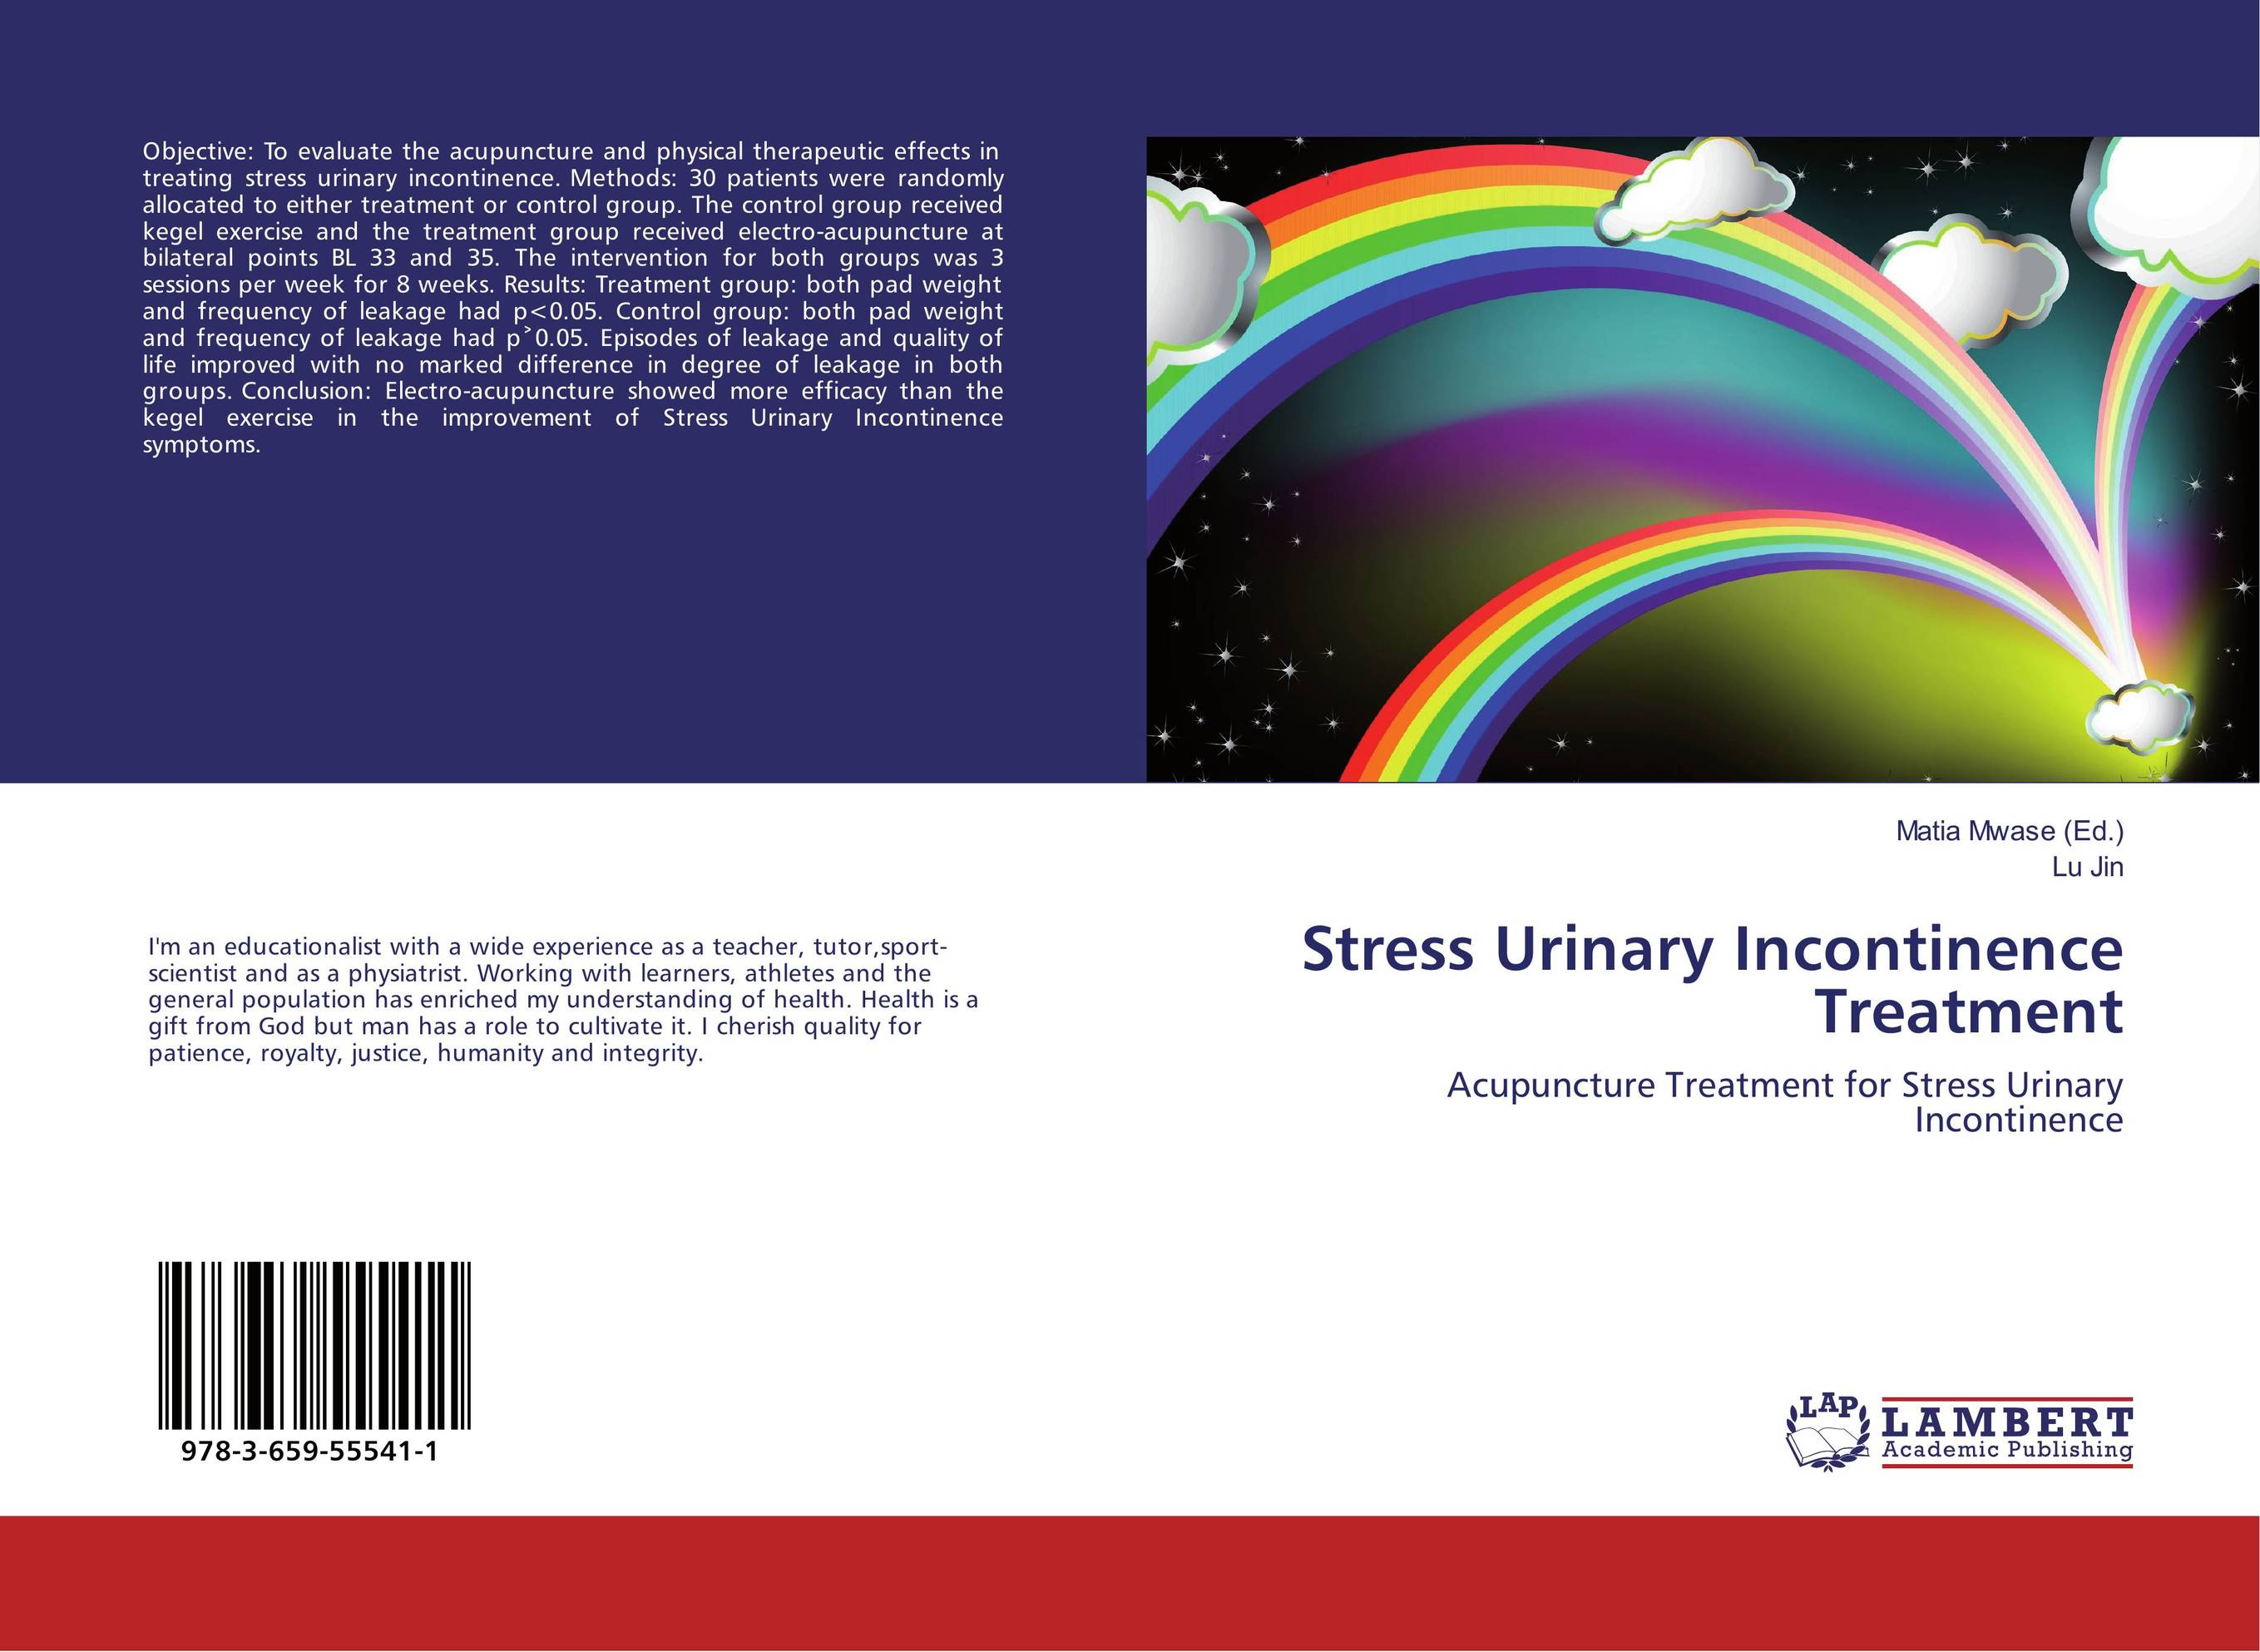 Stress Urinary Incontinence Treatment home use non bacterial prostatitis treatment and prevention urinary incontinence therapy prostate therapy medical device